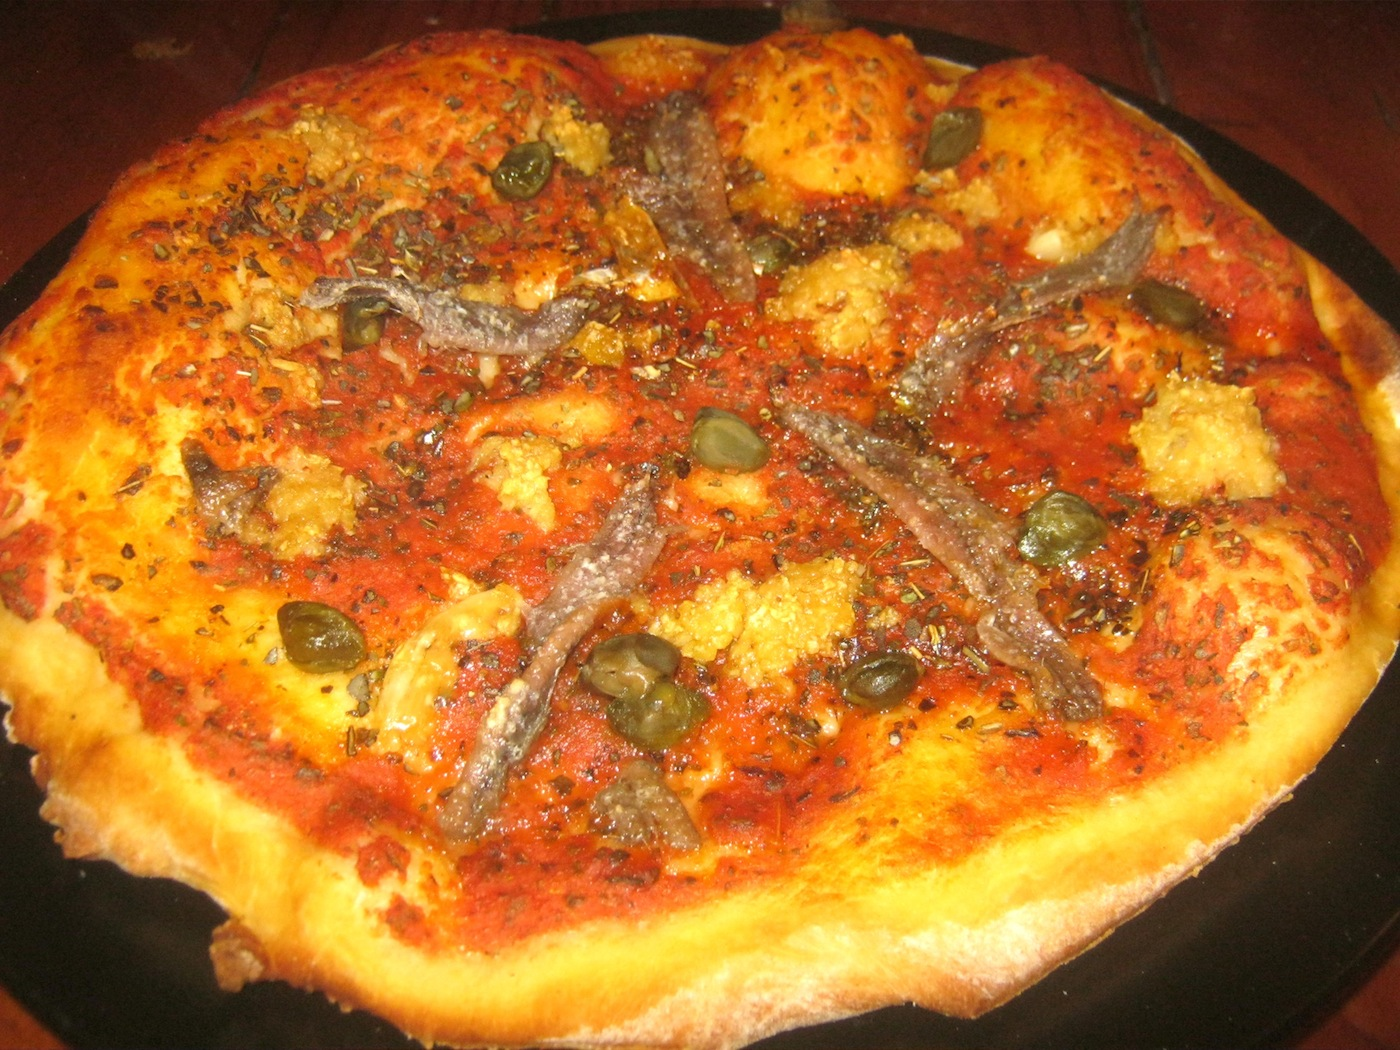 A freshly baked Pizza Marinara served on a black plate